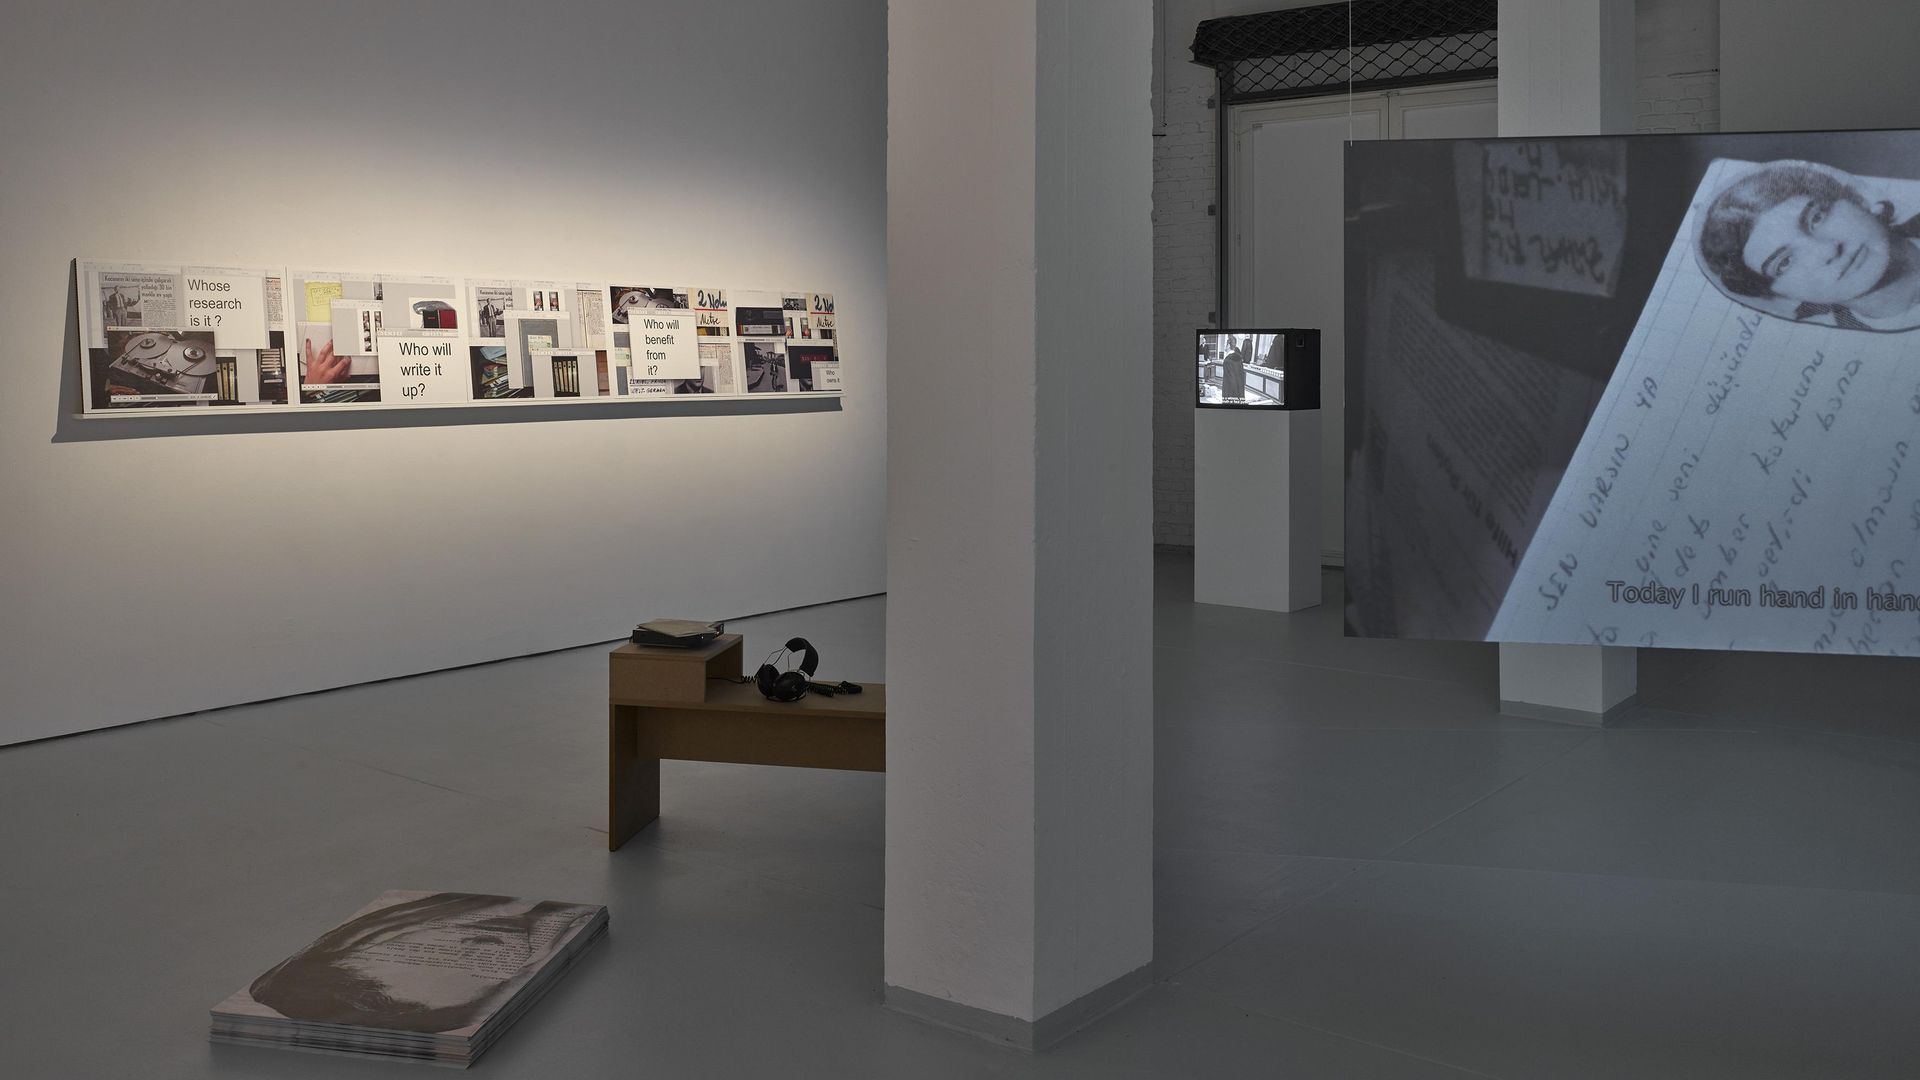 Cana Bilir-Meier, installation view ars viva 2019, KAI 10 | ARTHENA FOUNDATION, photo: Achim Kukulies, Düsseldorf, Courtesy the artist